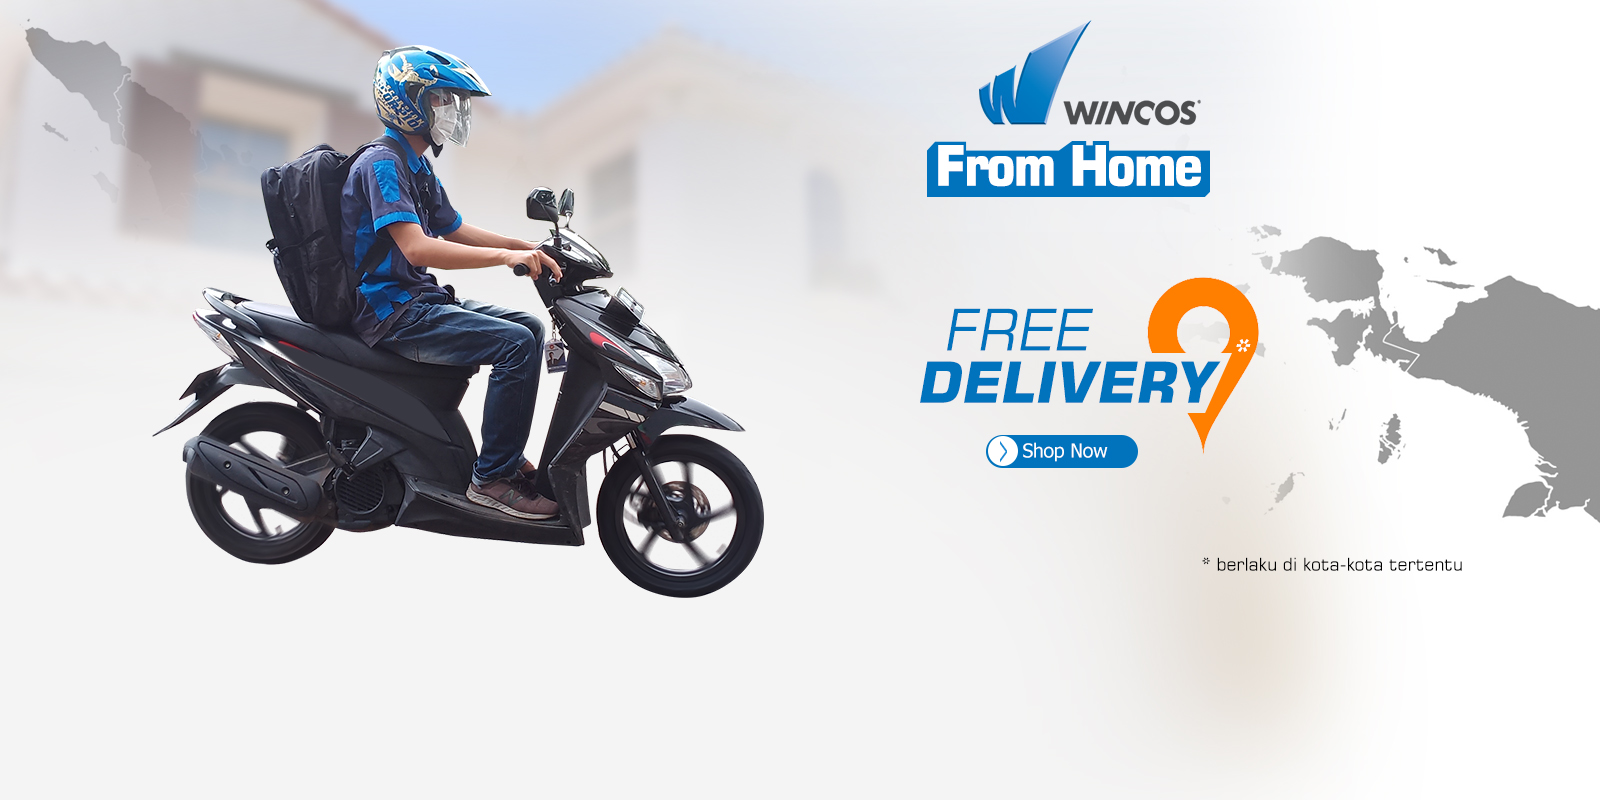 wincos home service free delivery